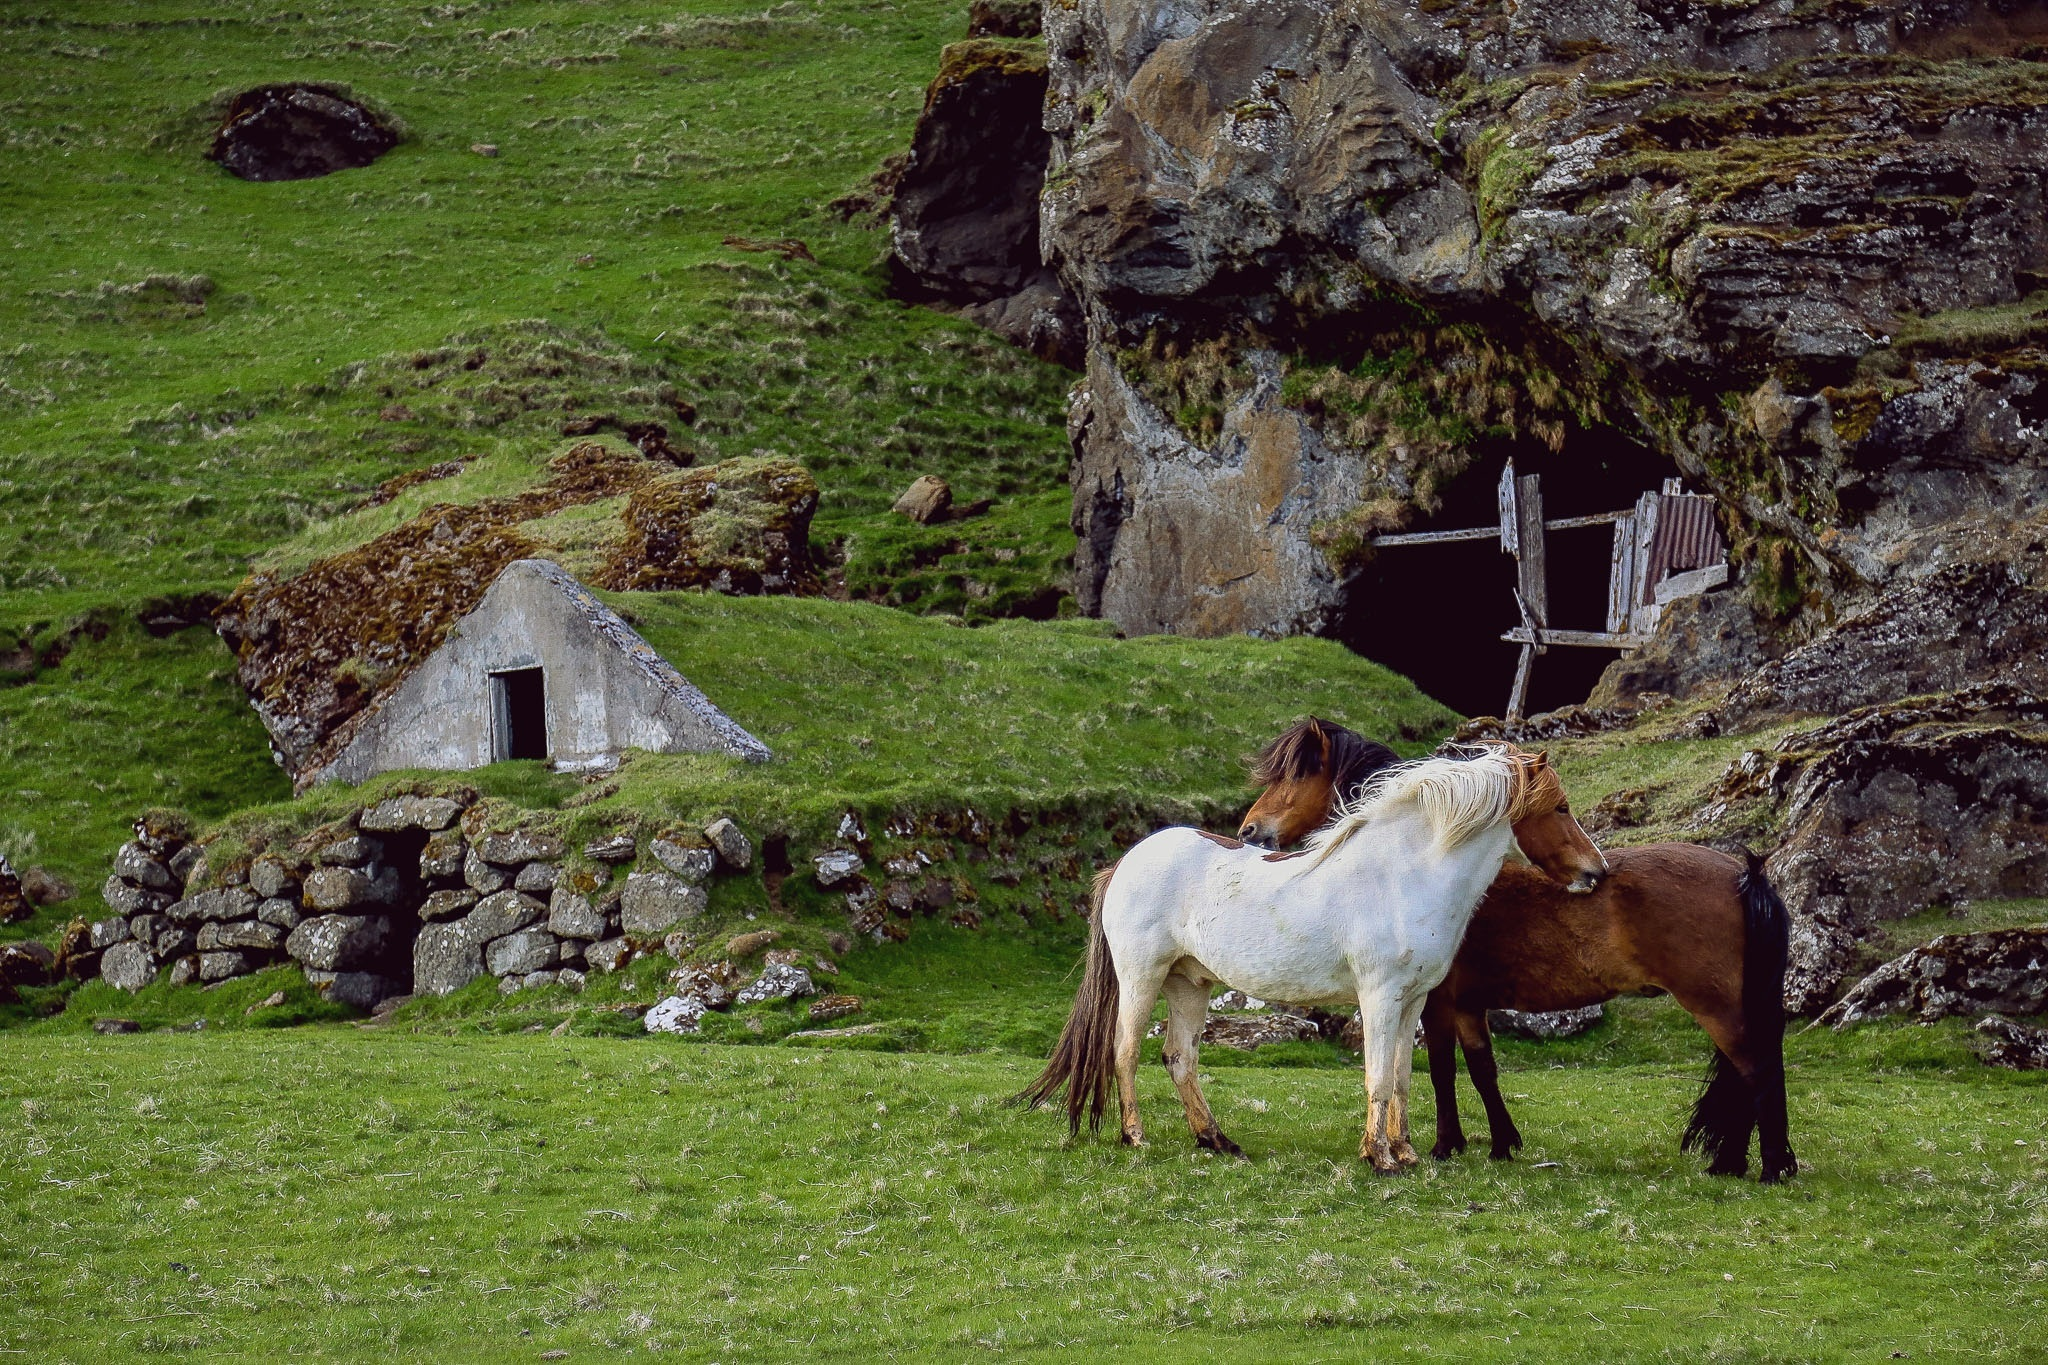 70542 download wallpaper Animals, Horses, Pasture, Farm, Grass, Structure screensavers and pictures for free